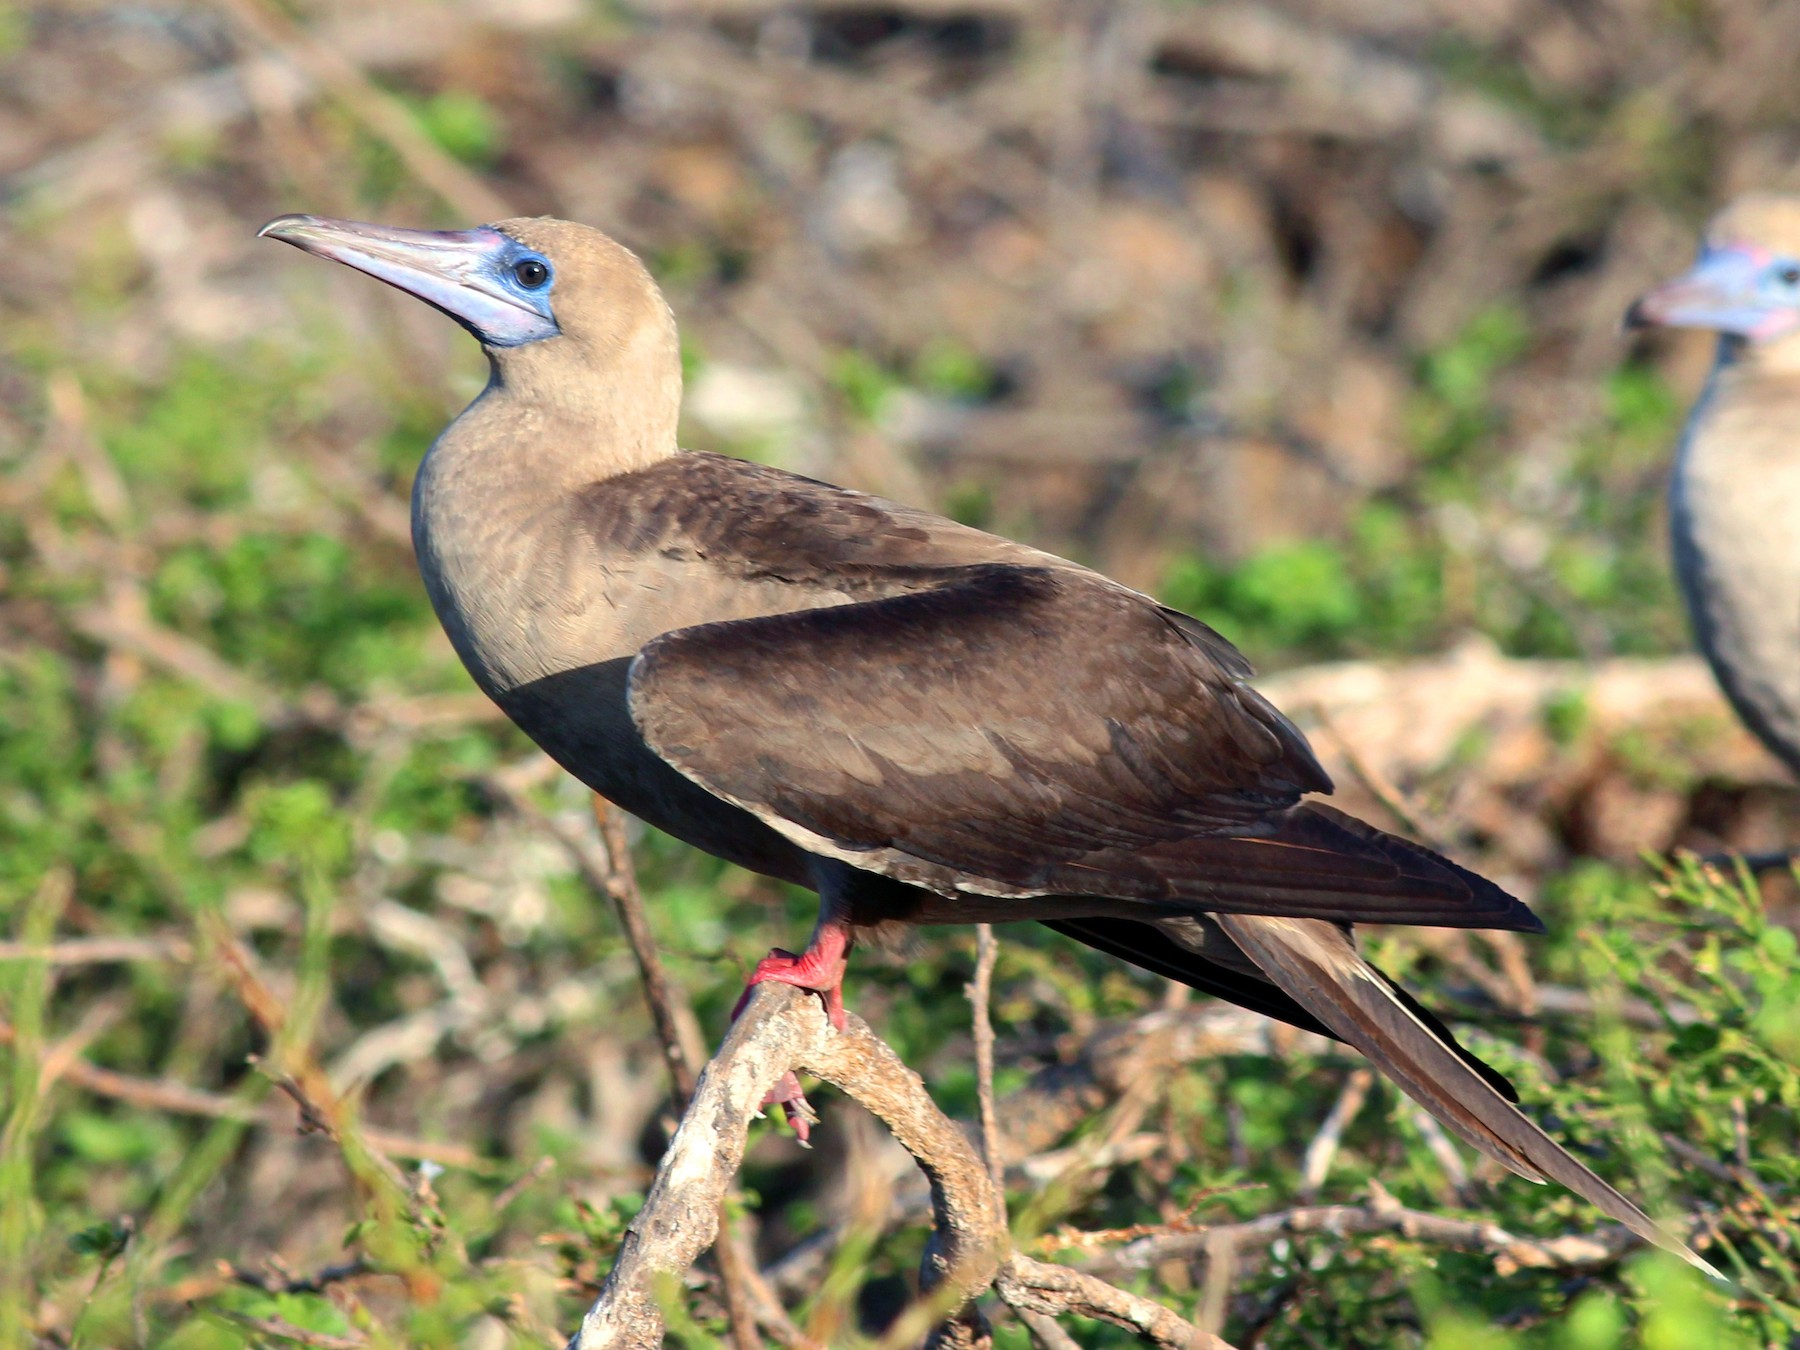 Red-footed Booby - Shawn Billerman